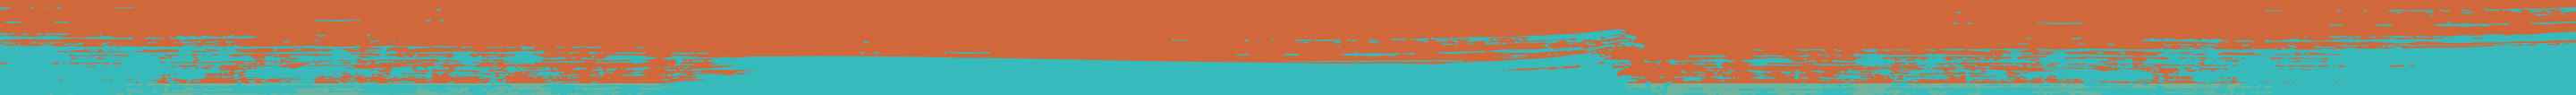 Beyond - Orange to Teal Divider